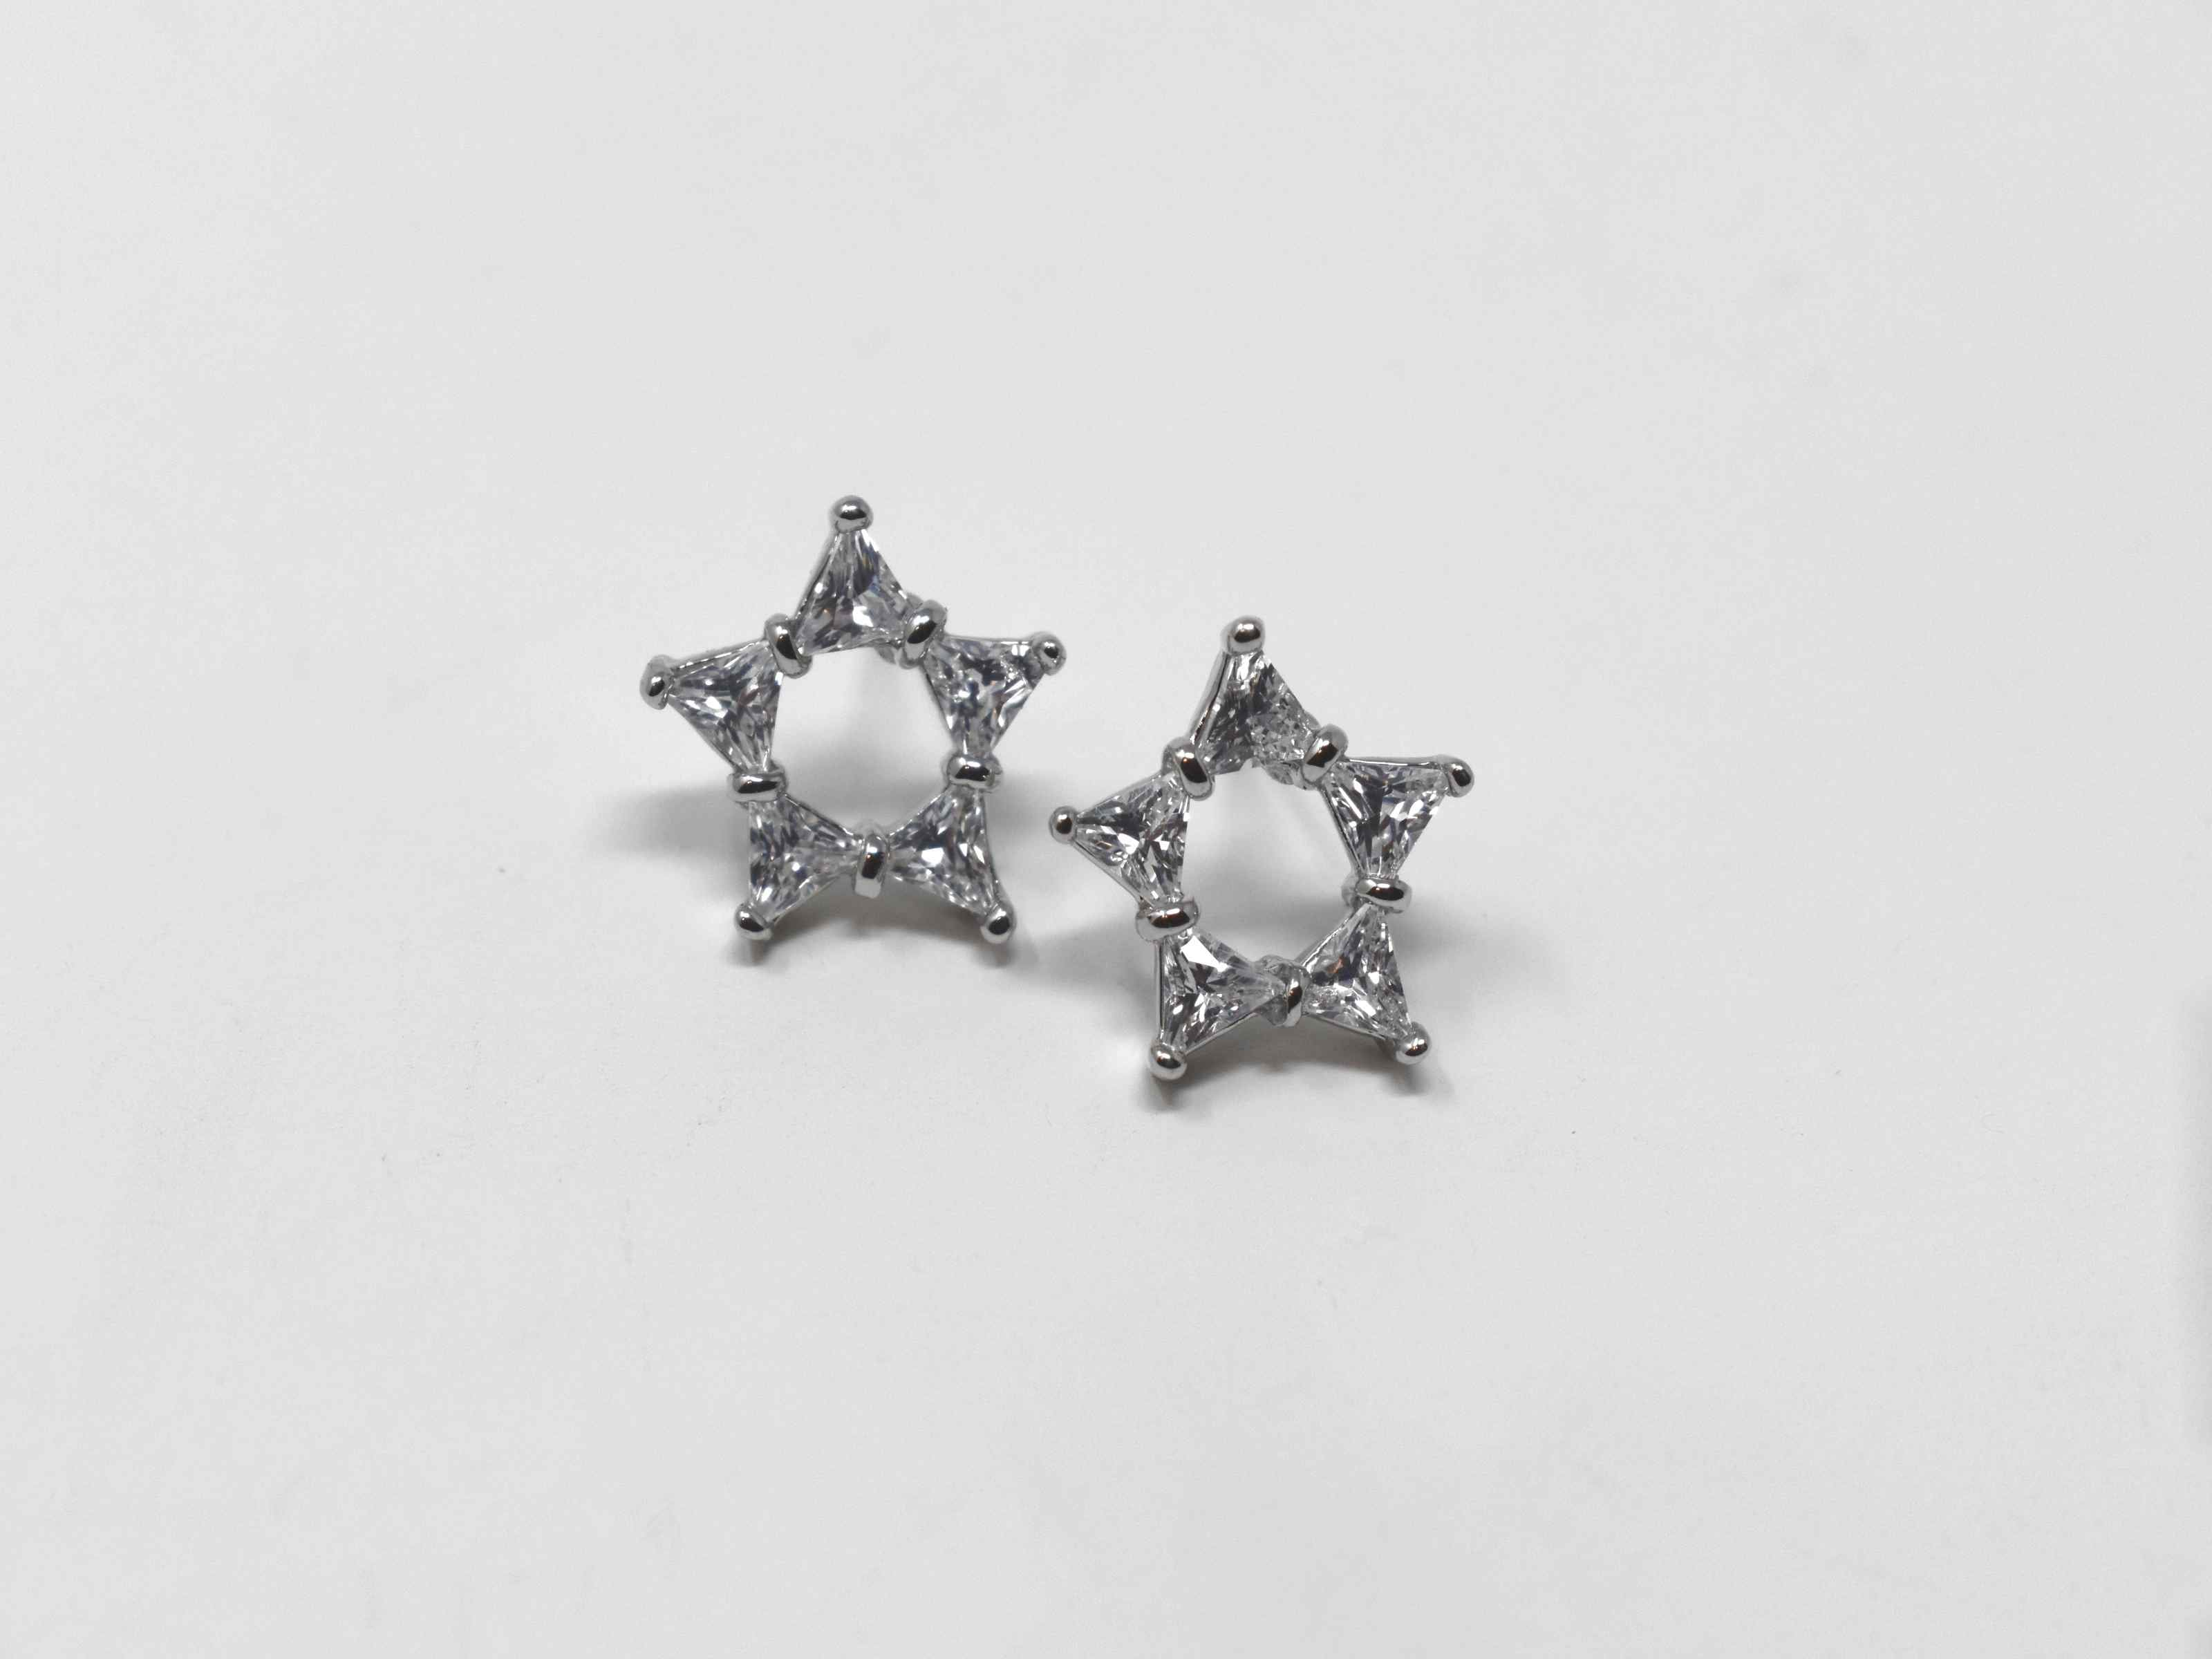 These Dianella earrings are a must have staple. These beauties are a  silver star shaped knob earrings encrusted in stones. They are a 1/2 inch in length with a pushback clasp.